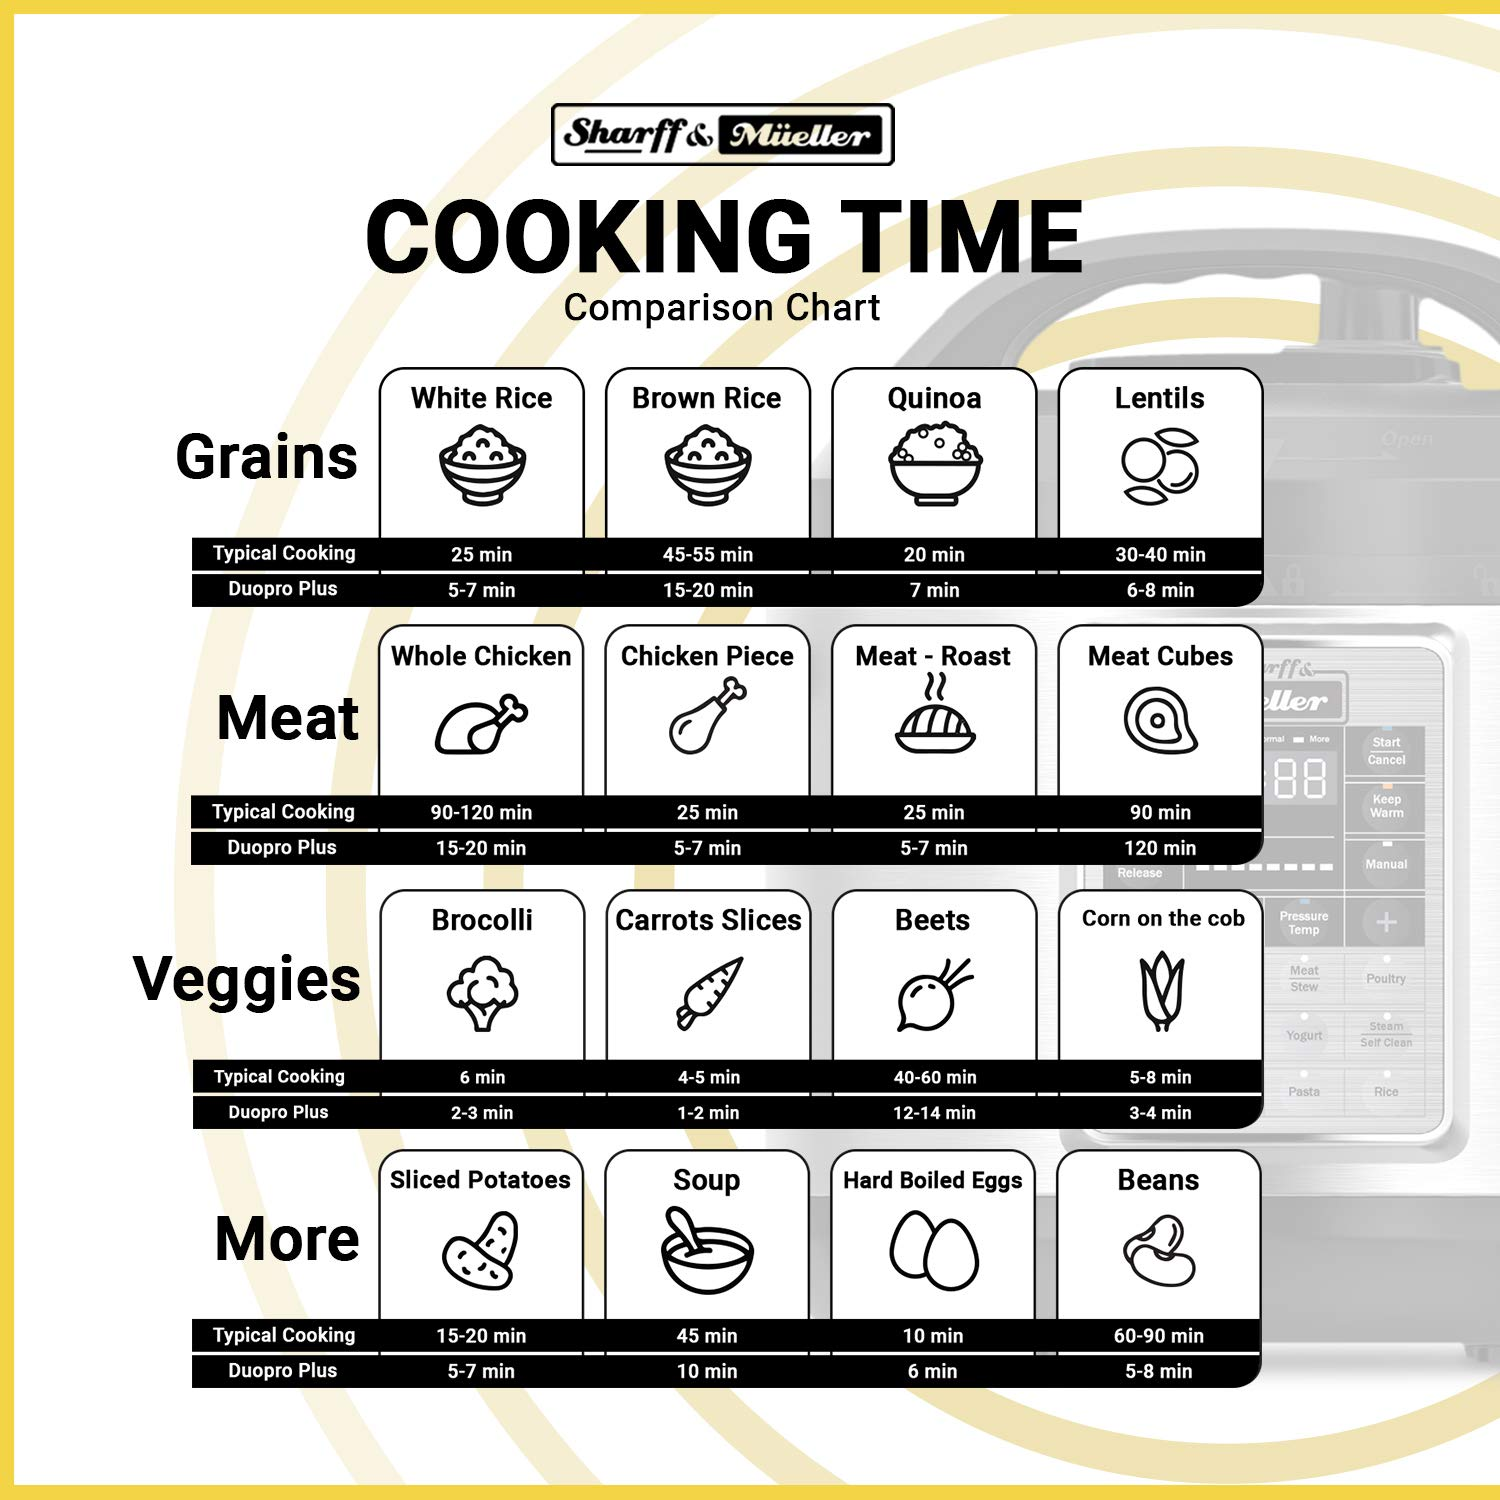 Electric Pressure Cooker 6 Quart Stainless Steel 12 in 1 Programmable Multipot Cooker Duopro RecipeBook Included by Sharff and Mueller by Sharff & Müeller (Image #5)